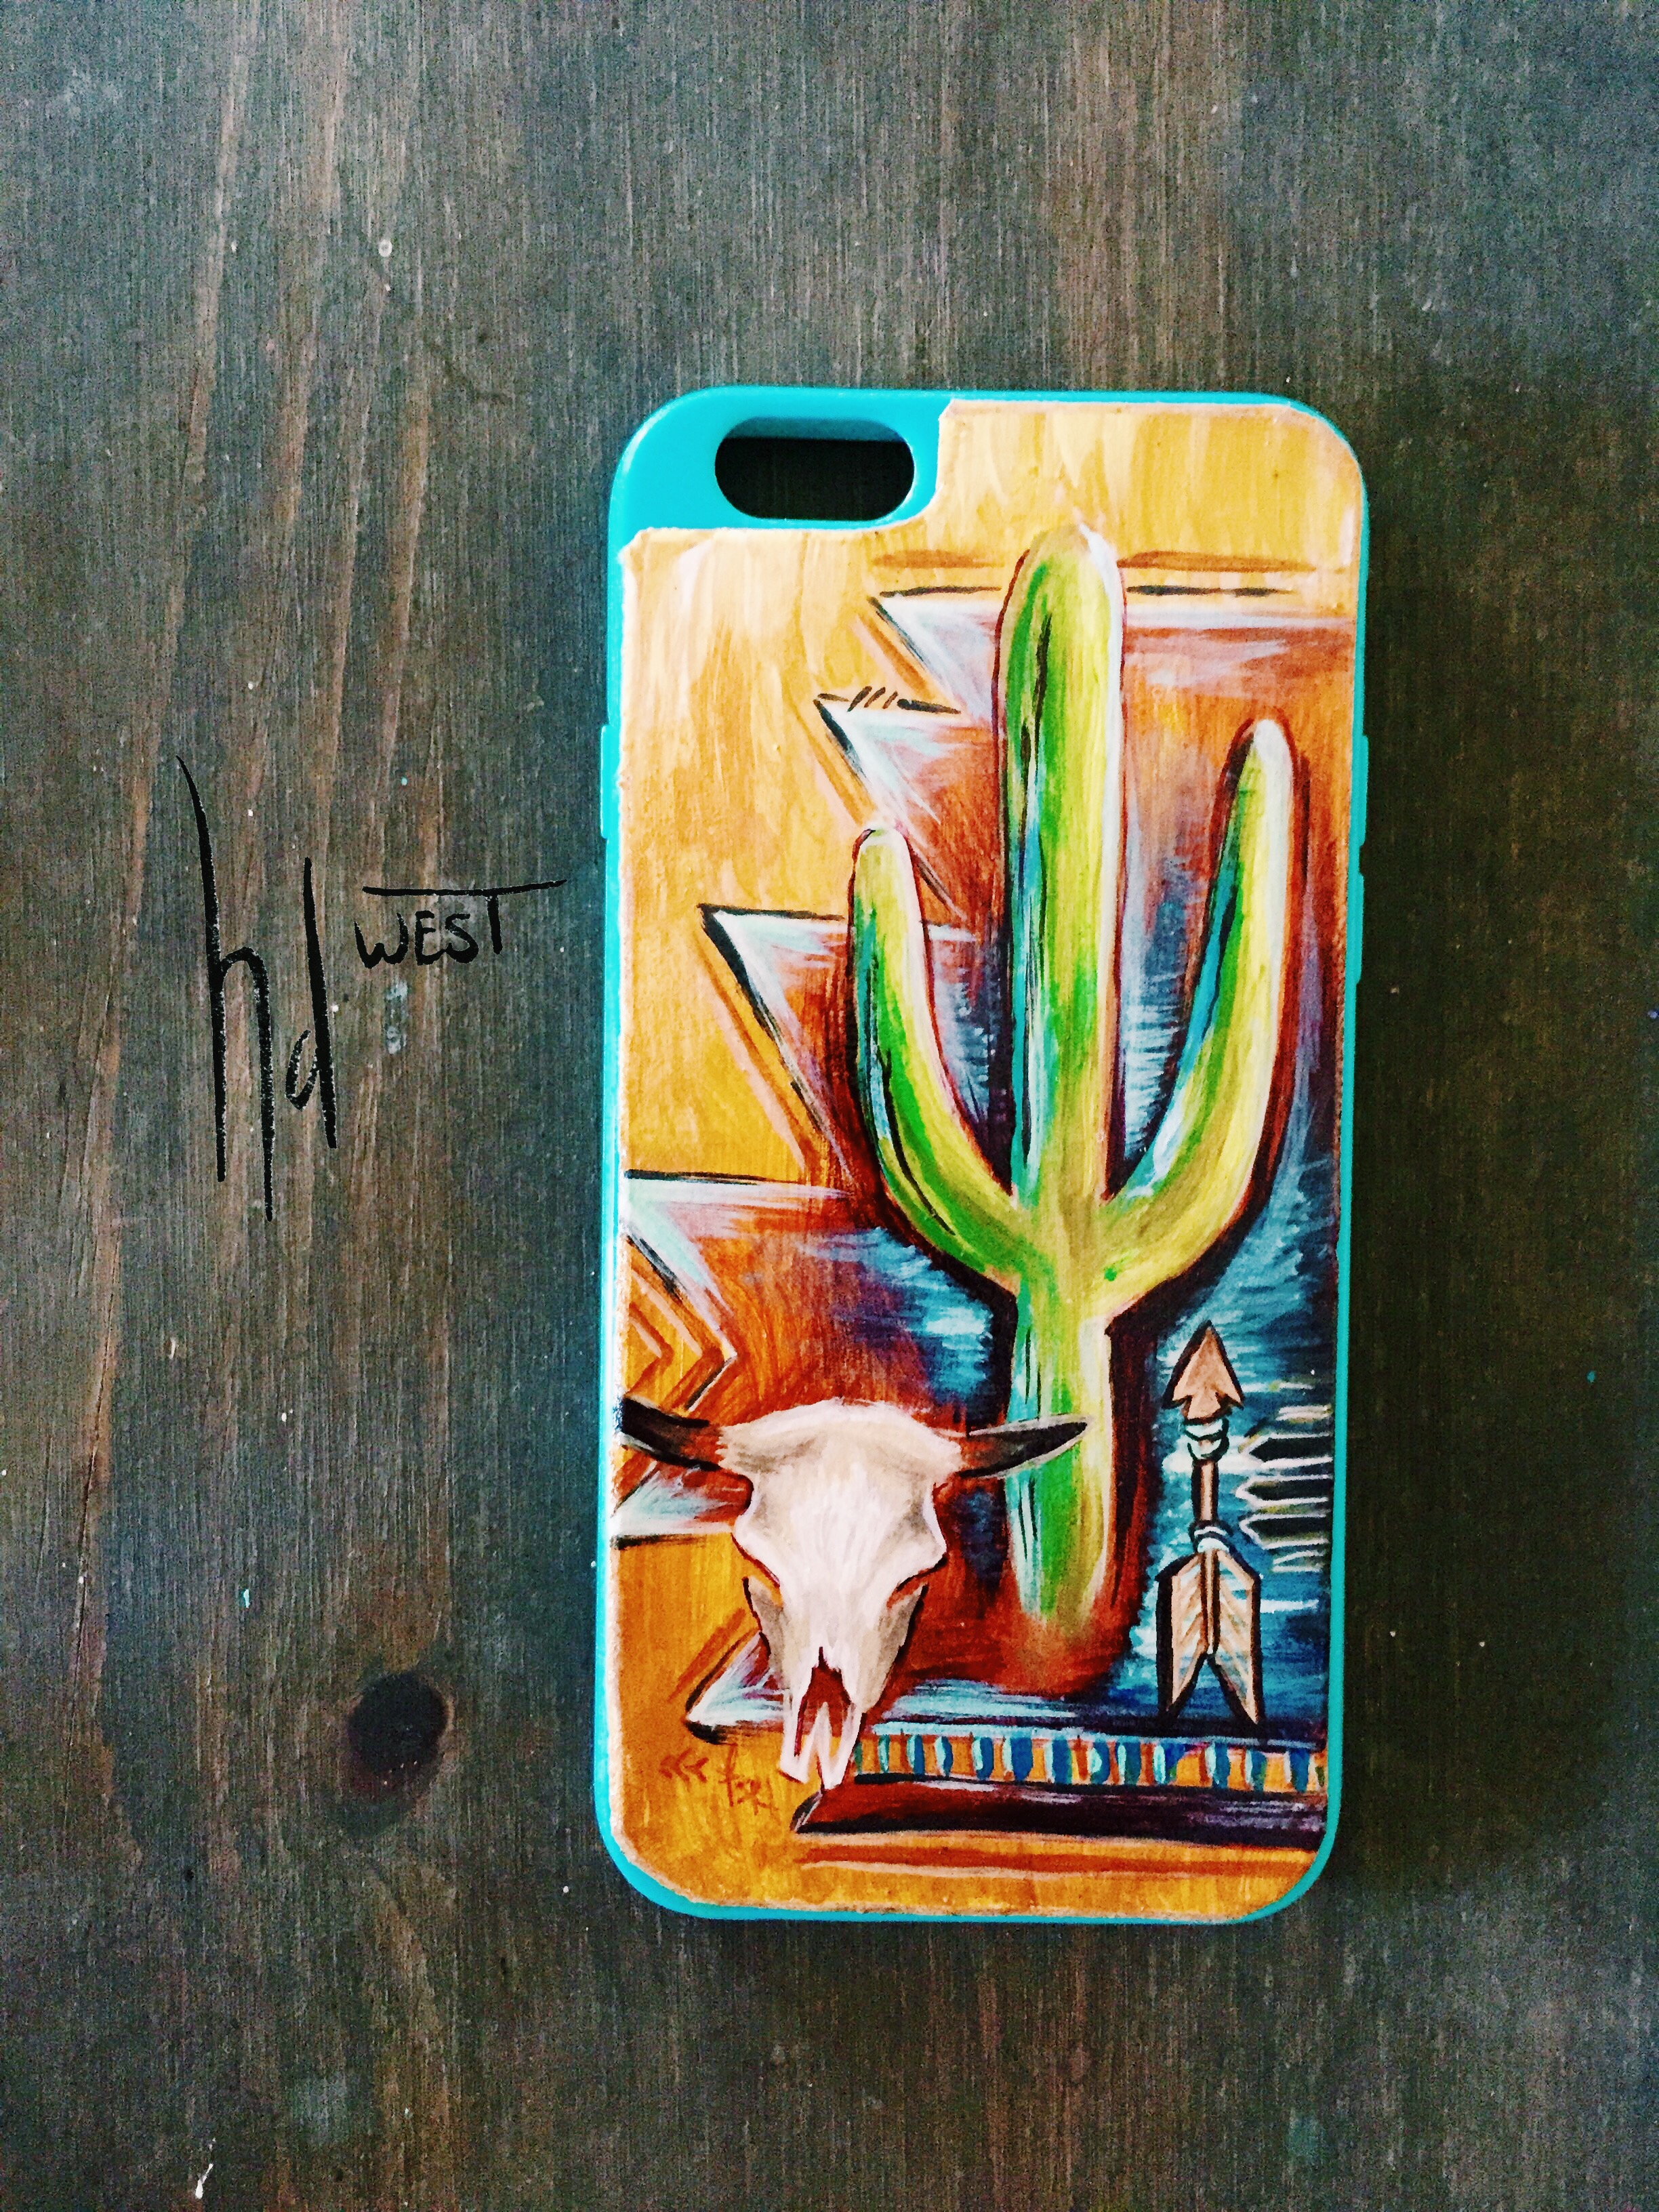 hdwest phone cover